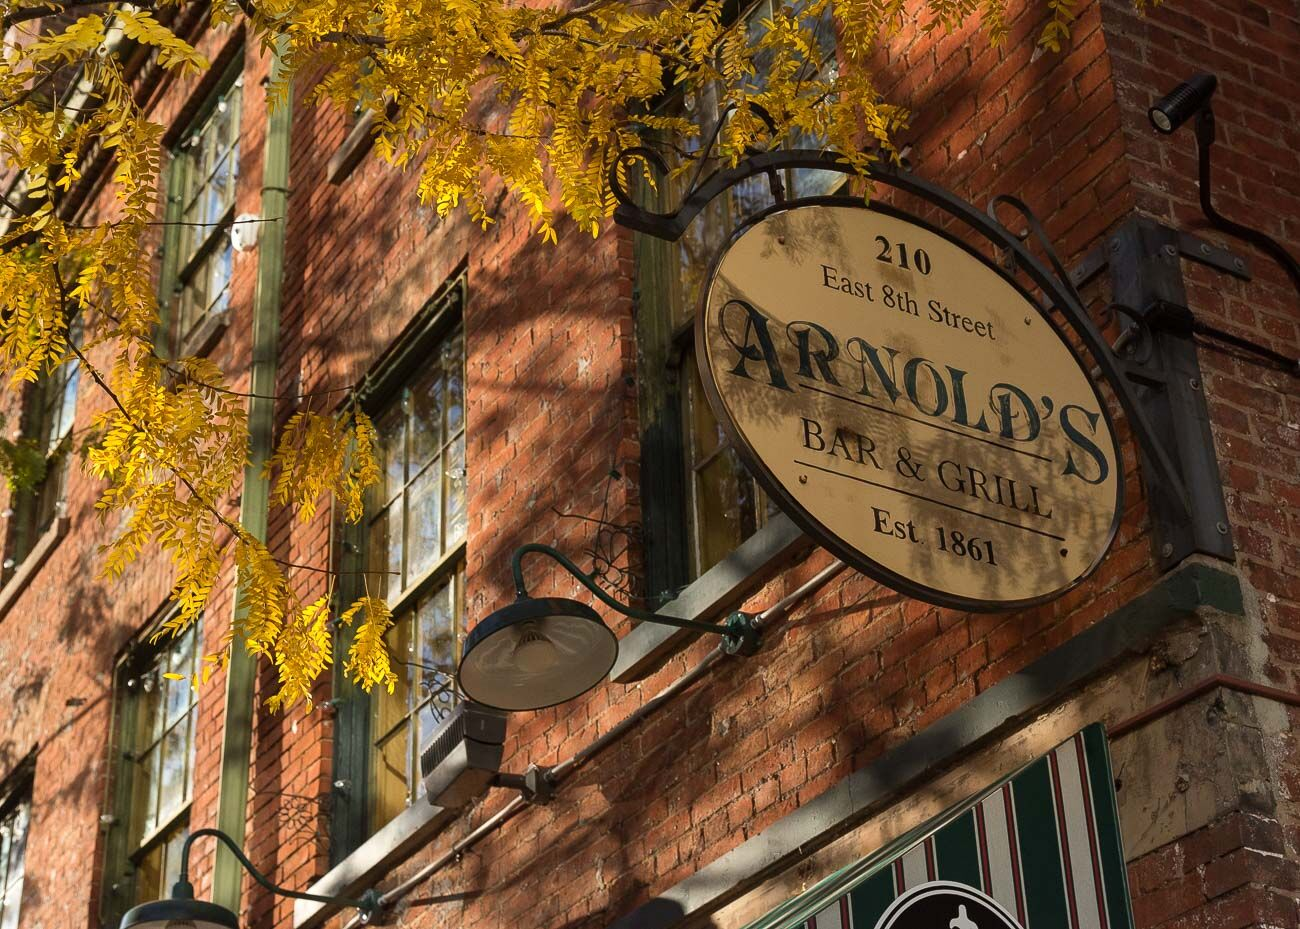 PLACE: Arnold's Bar & Grill / ADDRESS: 210 E 8th Street (Downtown) / Being the oldest continually operating bar in Cincinnati comes with its paranormal perks. Arnold's Bar dates back to 1861 and has its fair share of ghost sighting claims from patrons and employees alike. / Image: Phil Armstrong, Cincinnati Refined // Published: 10.17.20